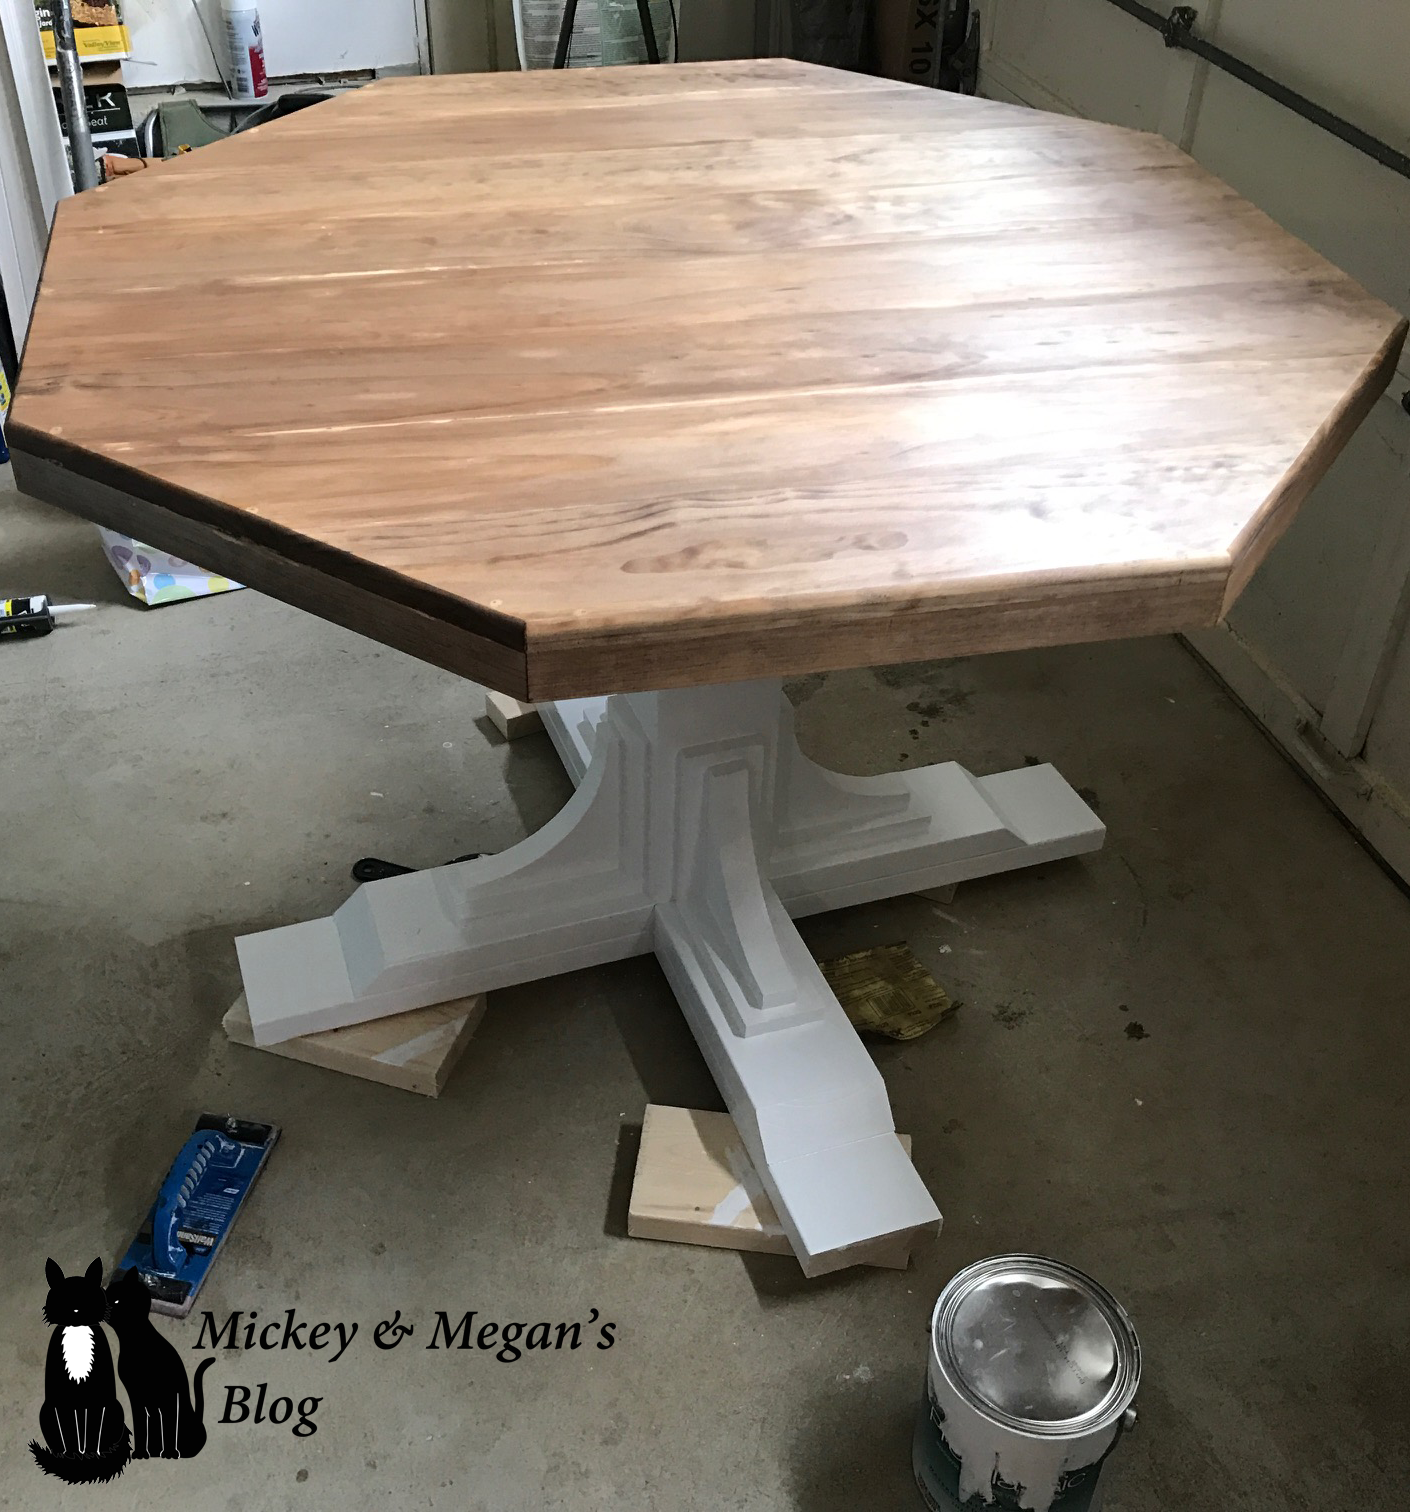 Diy Kitchen Table Farmhouse Style Octagon Round Table For The Breakfast Nook Kitchen Makeover Diy Kitchen Table Breakfast Nook Table Kitchen Table Redo